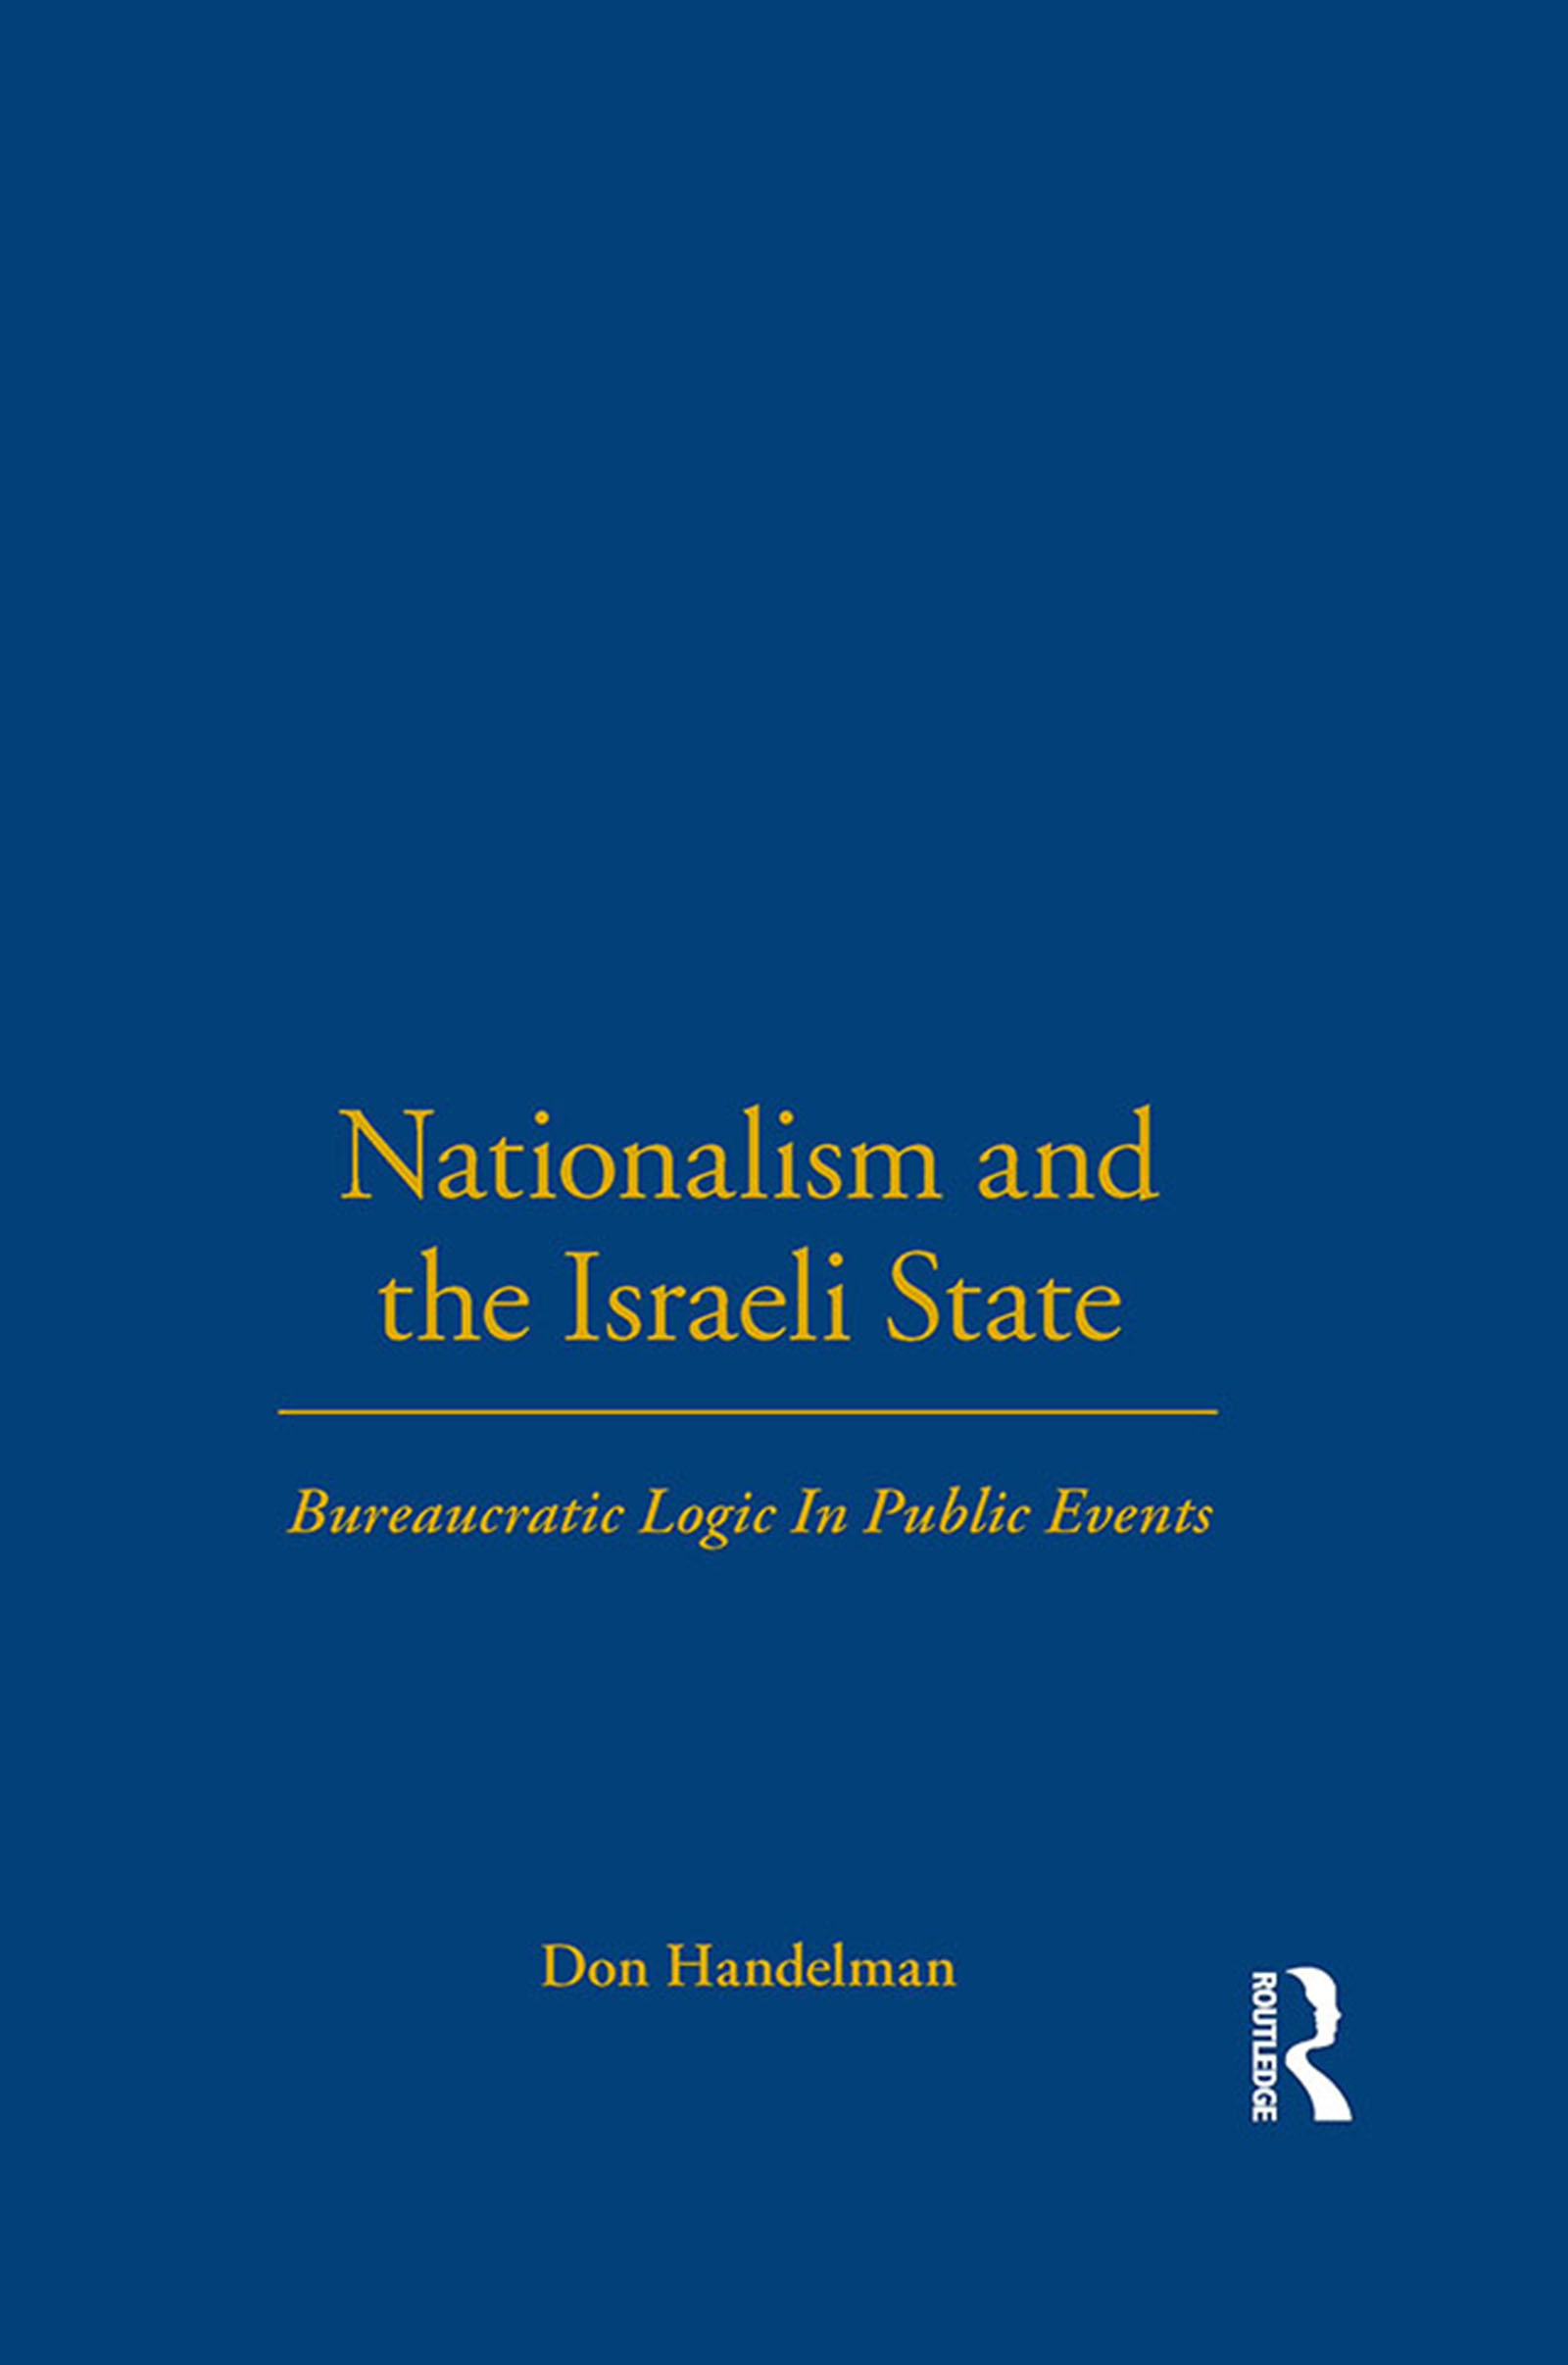 Nationalism and the Israeli State